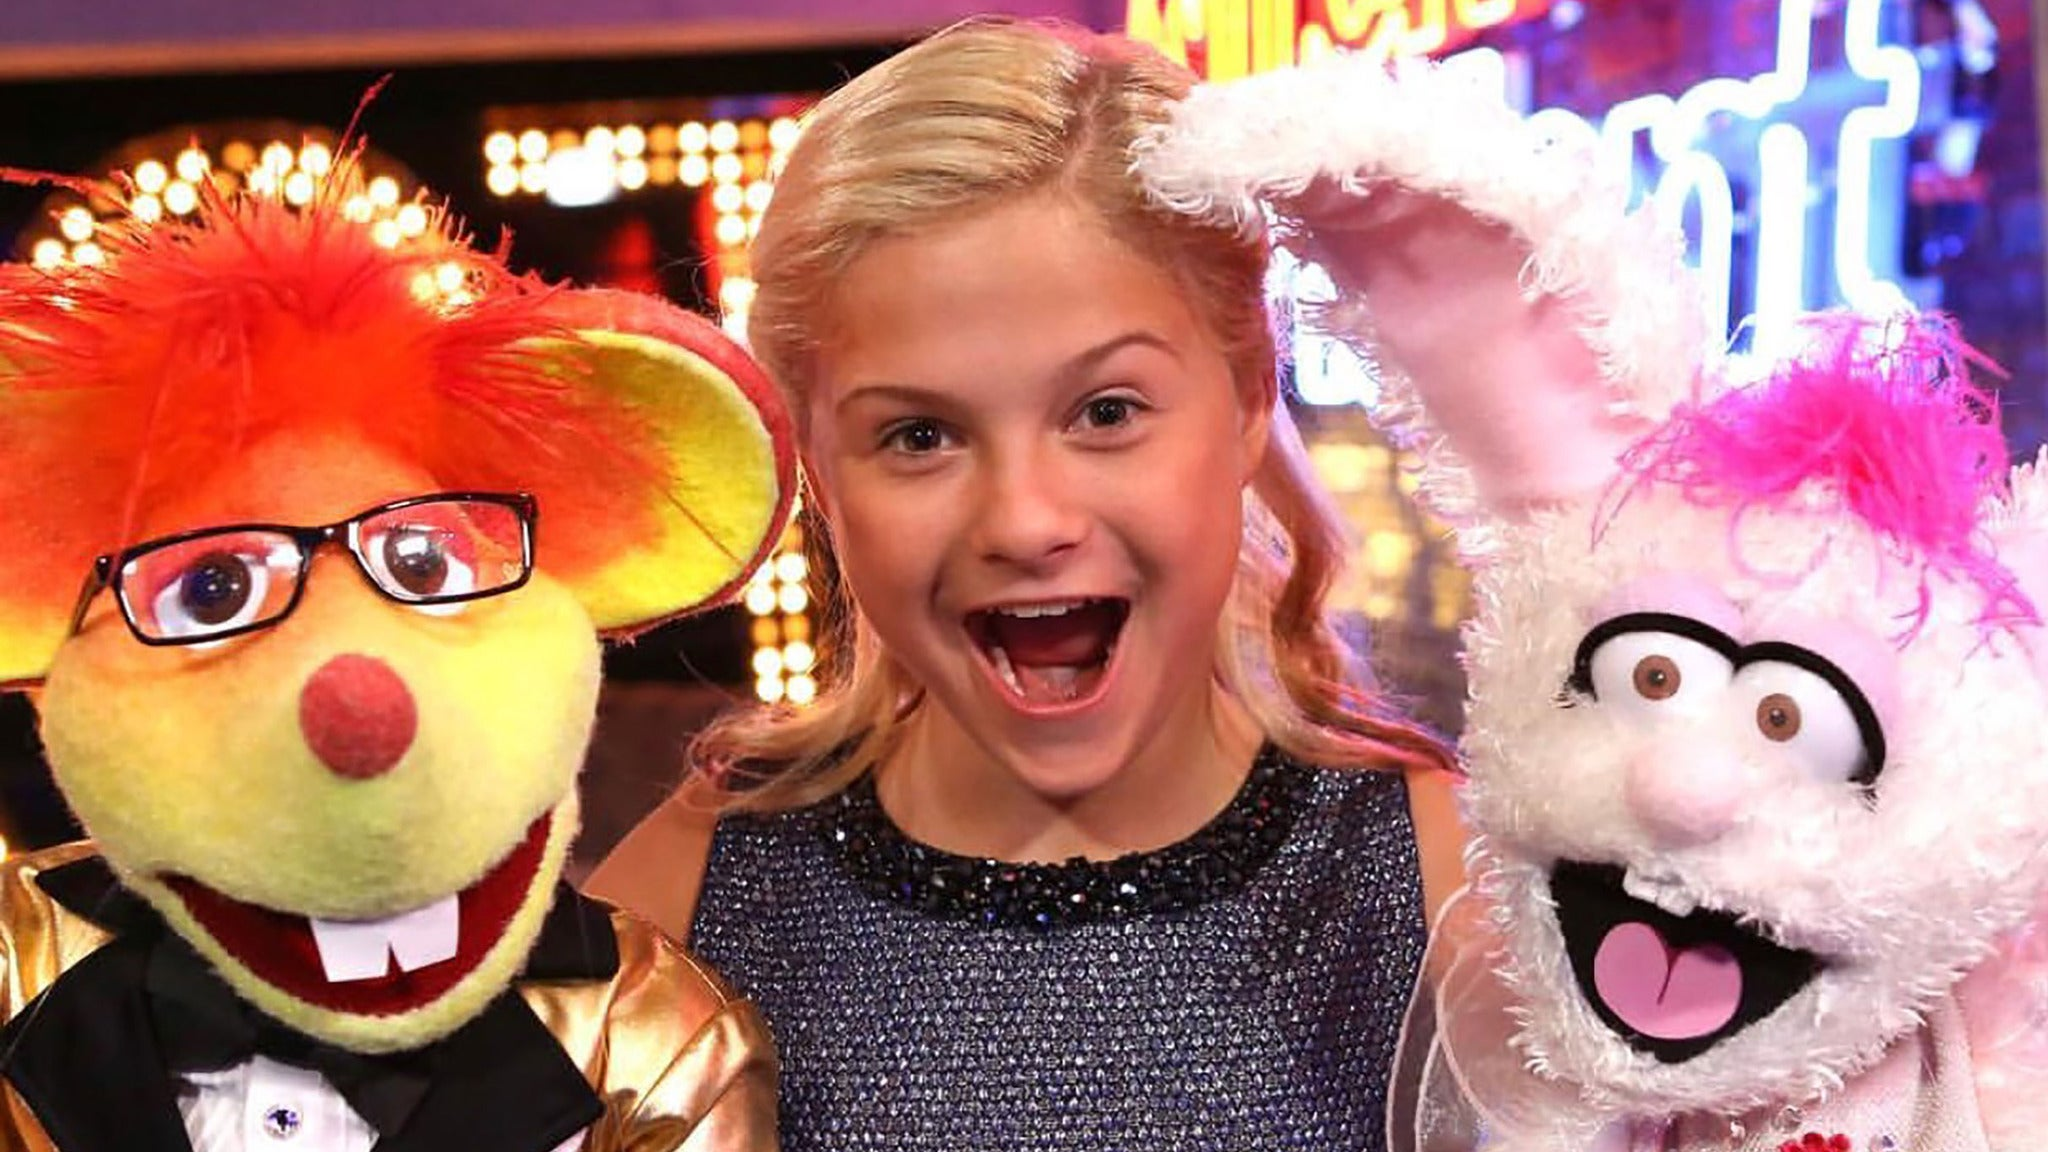 Darci Lynne and Friends Live at Rosemont Theatre